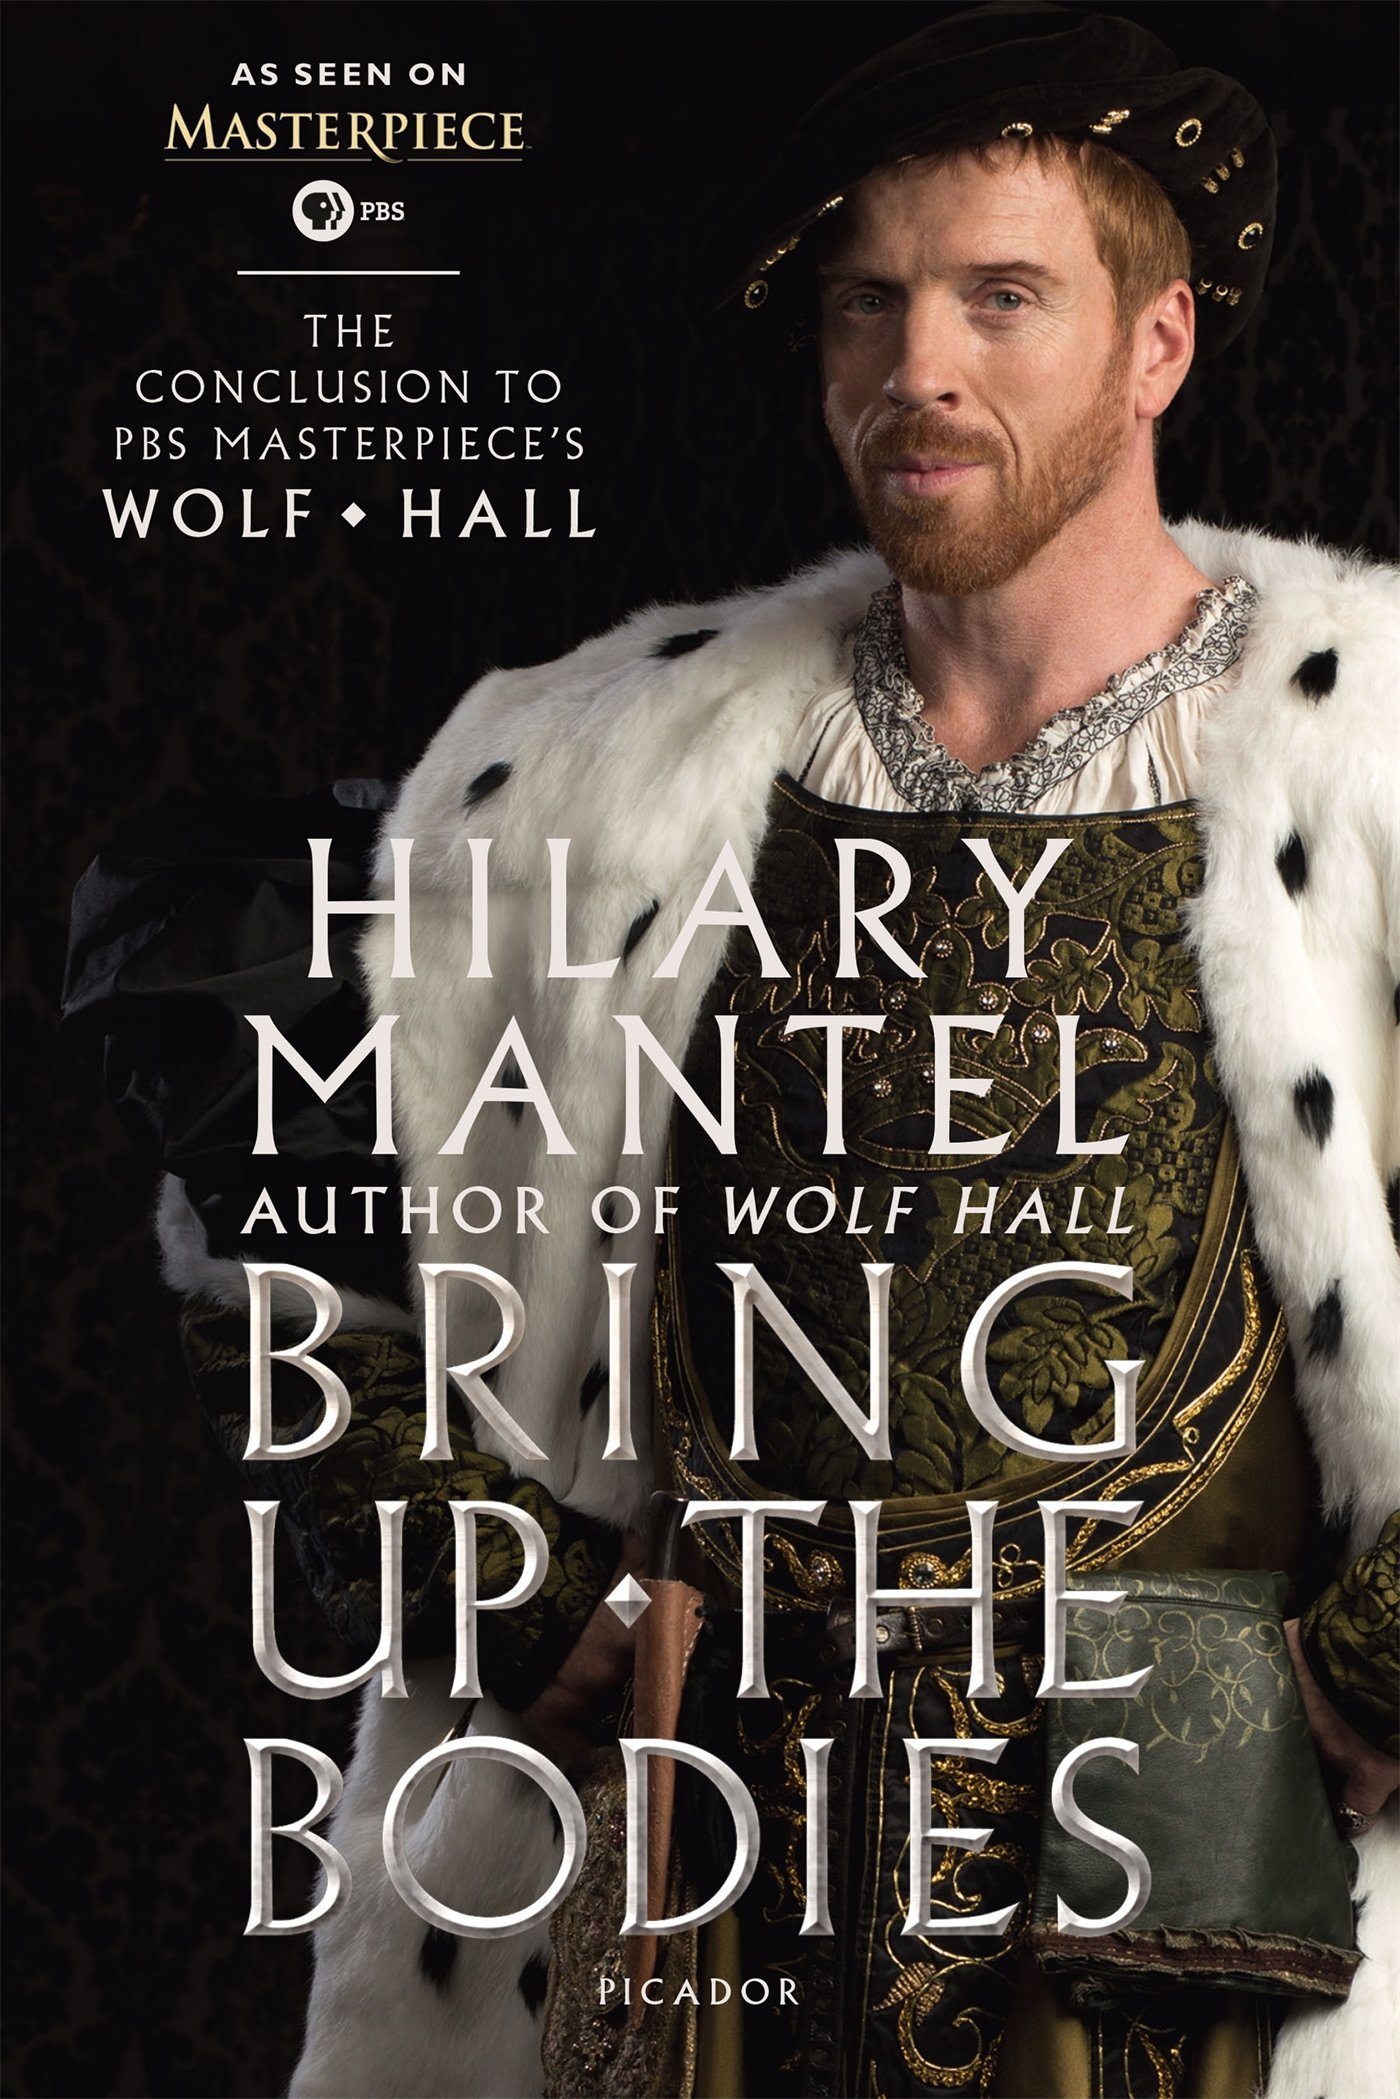 Bring Bodies Wolf Hall Book product image